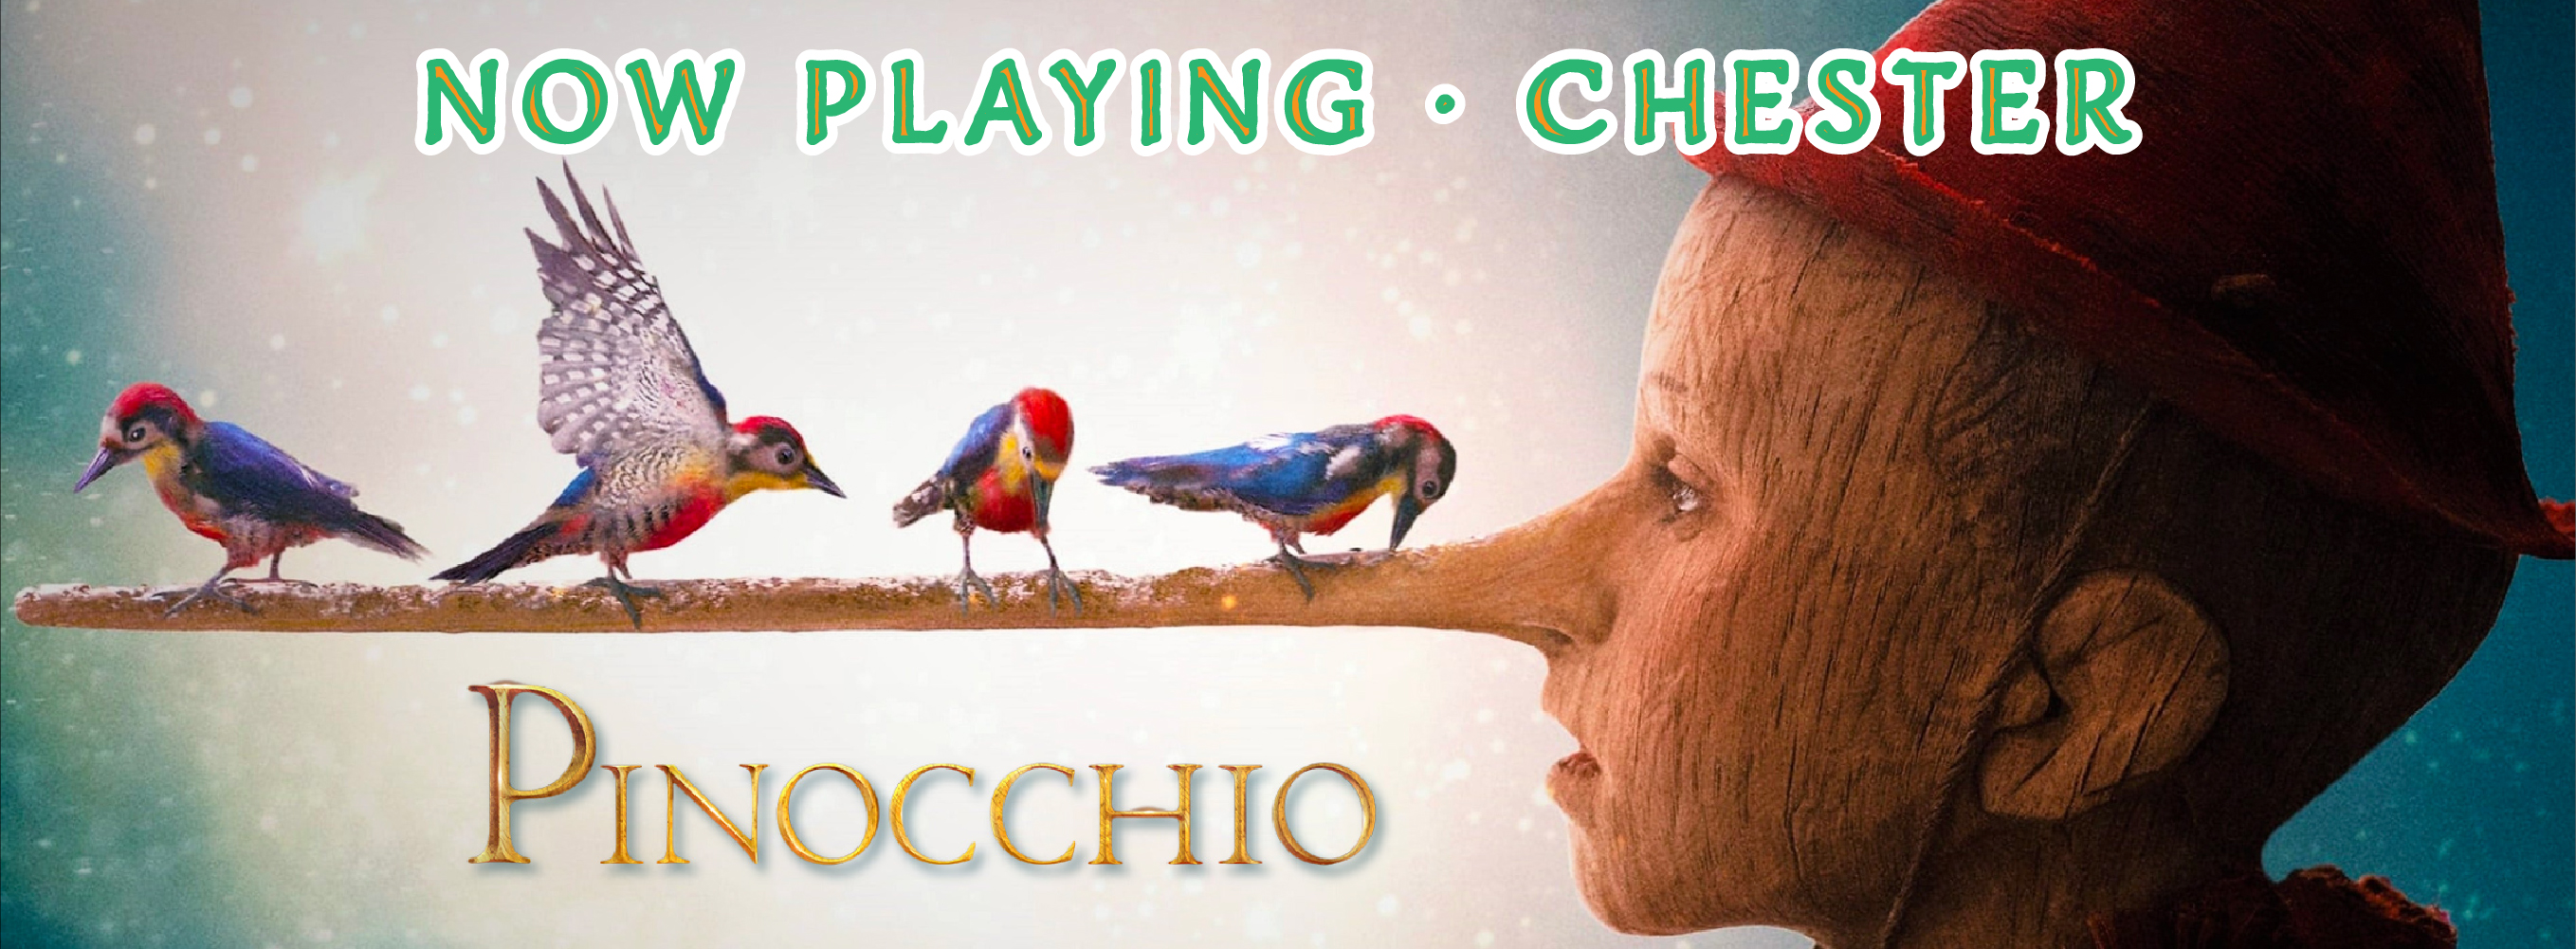 Get tickets to Pinocchio now playing